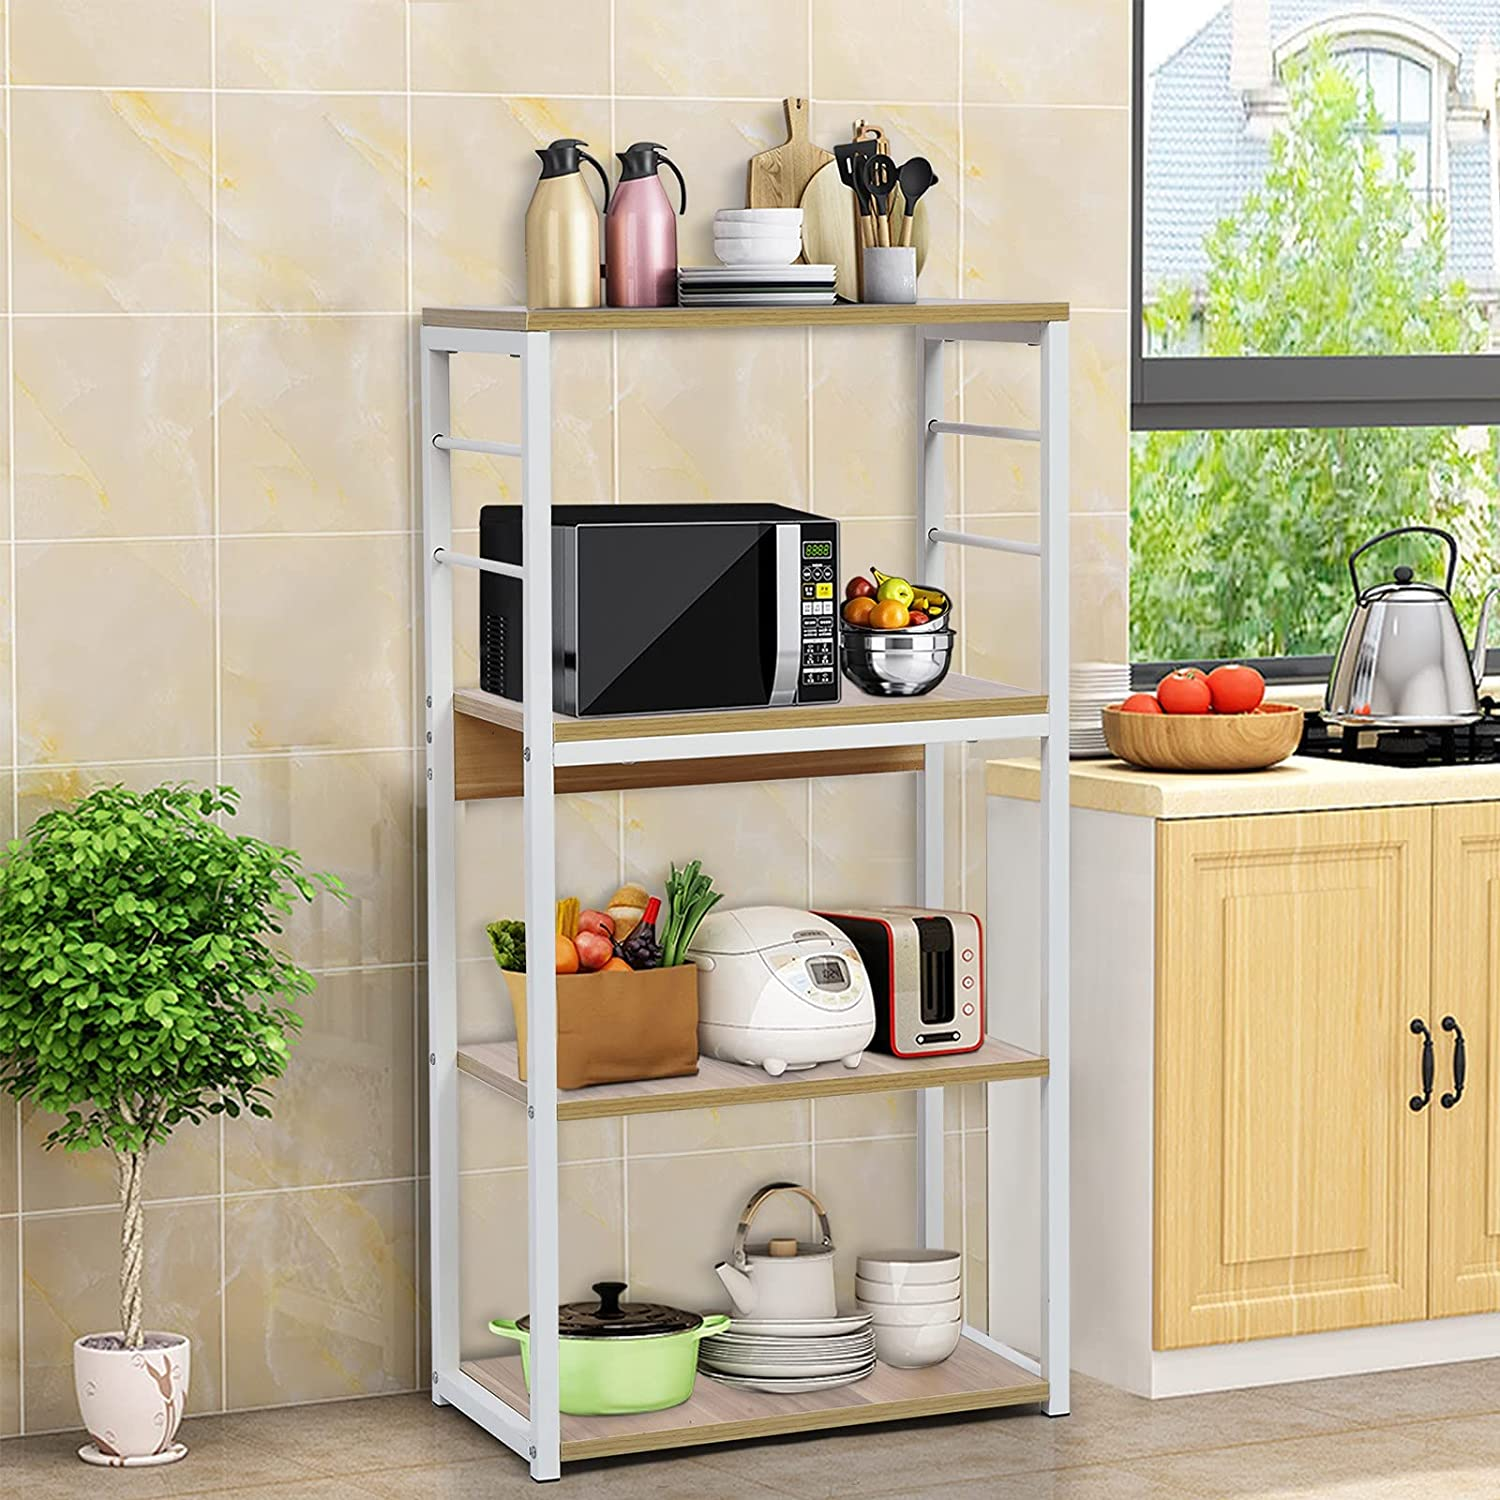 Kitchen Baker's Rack Microwave High shopping quality Stand Oven Industrial Kitche